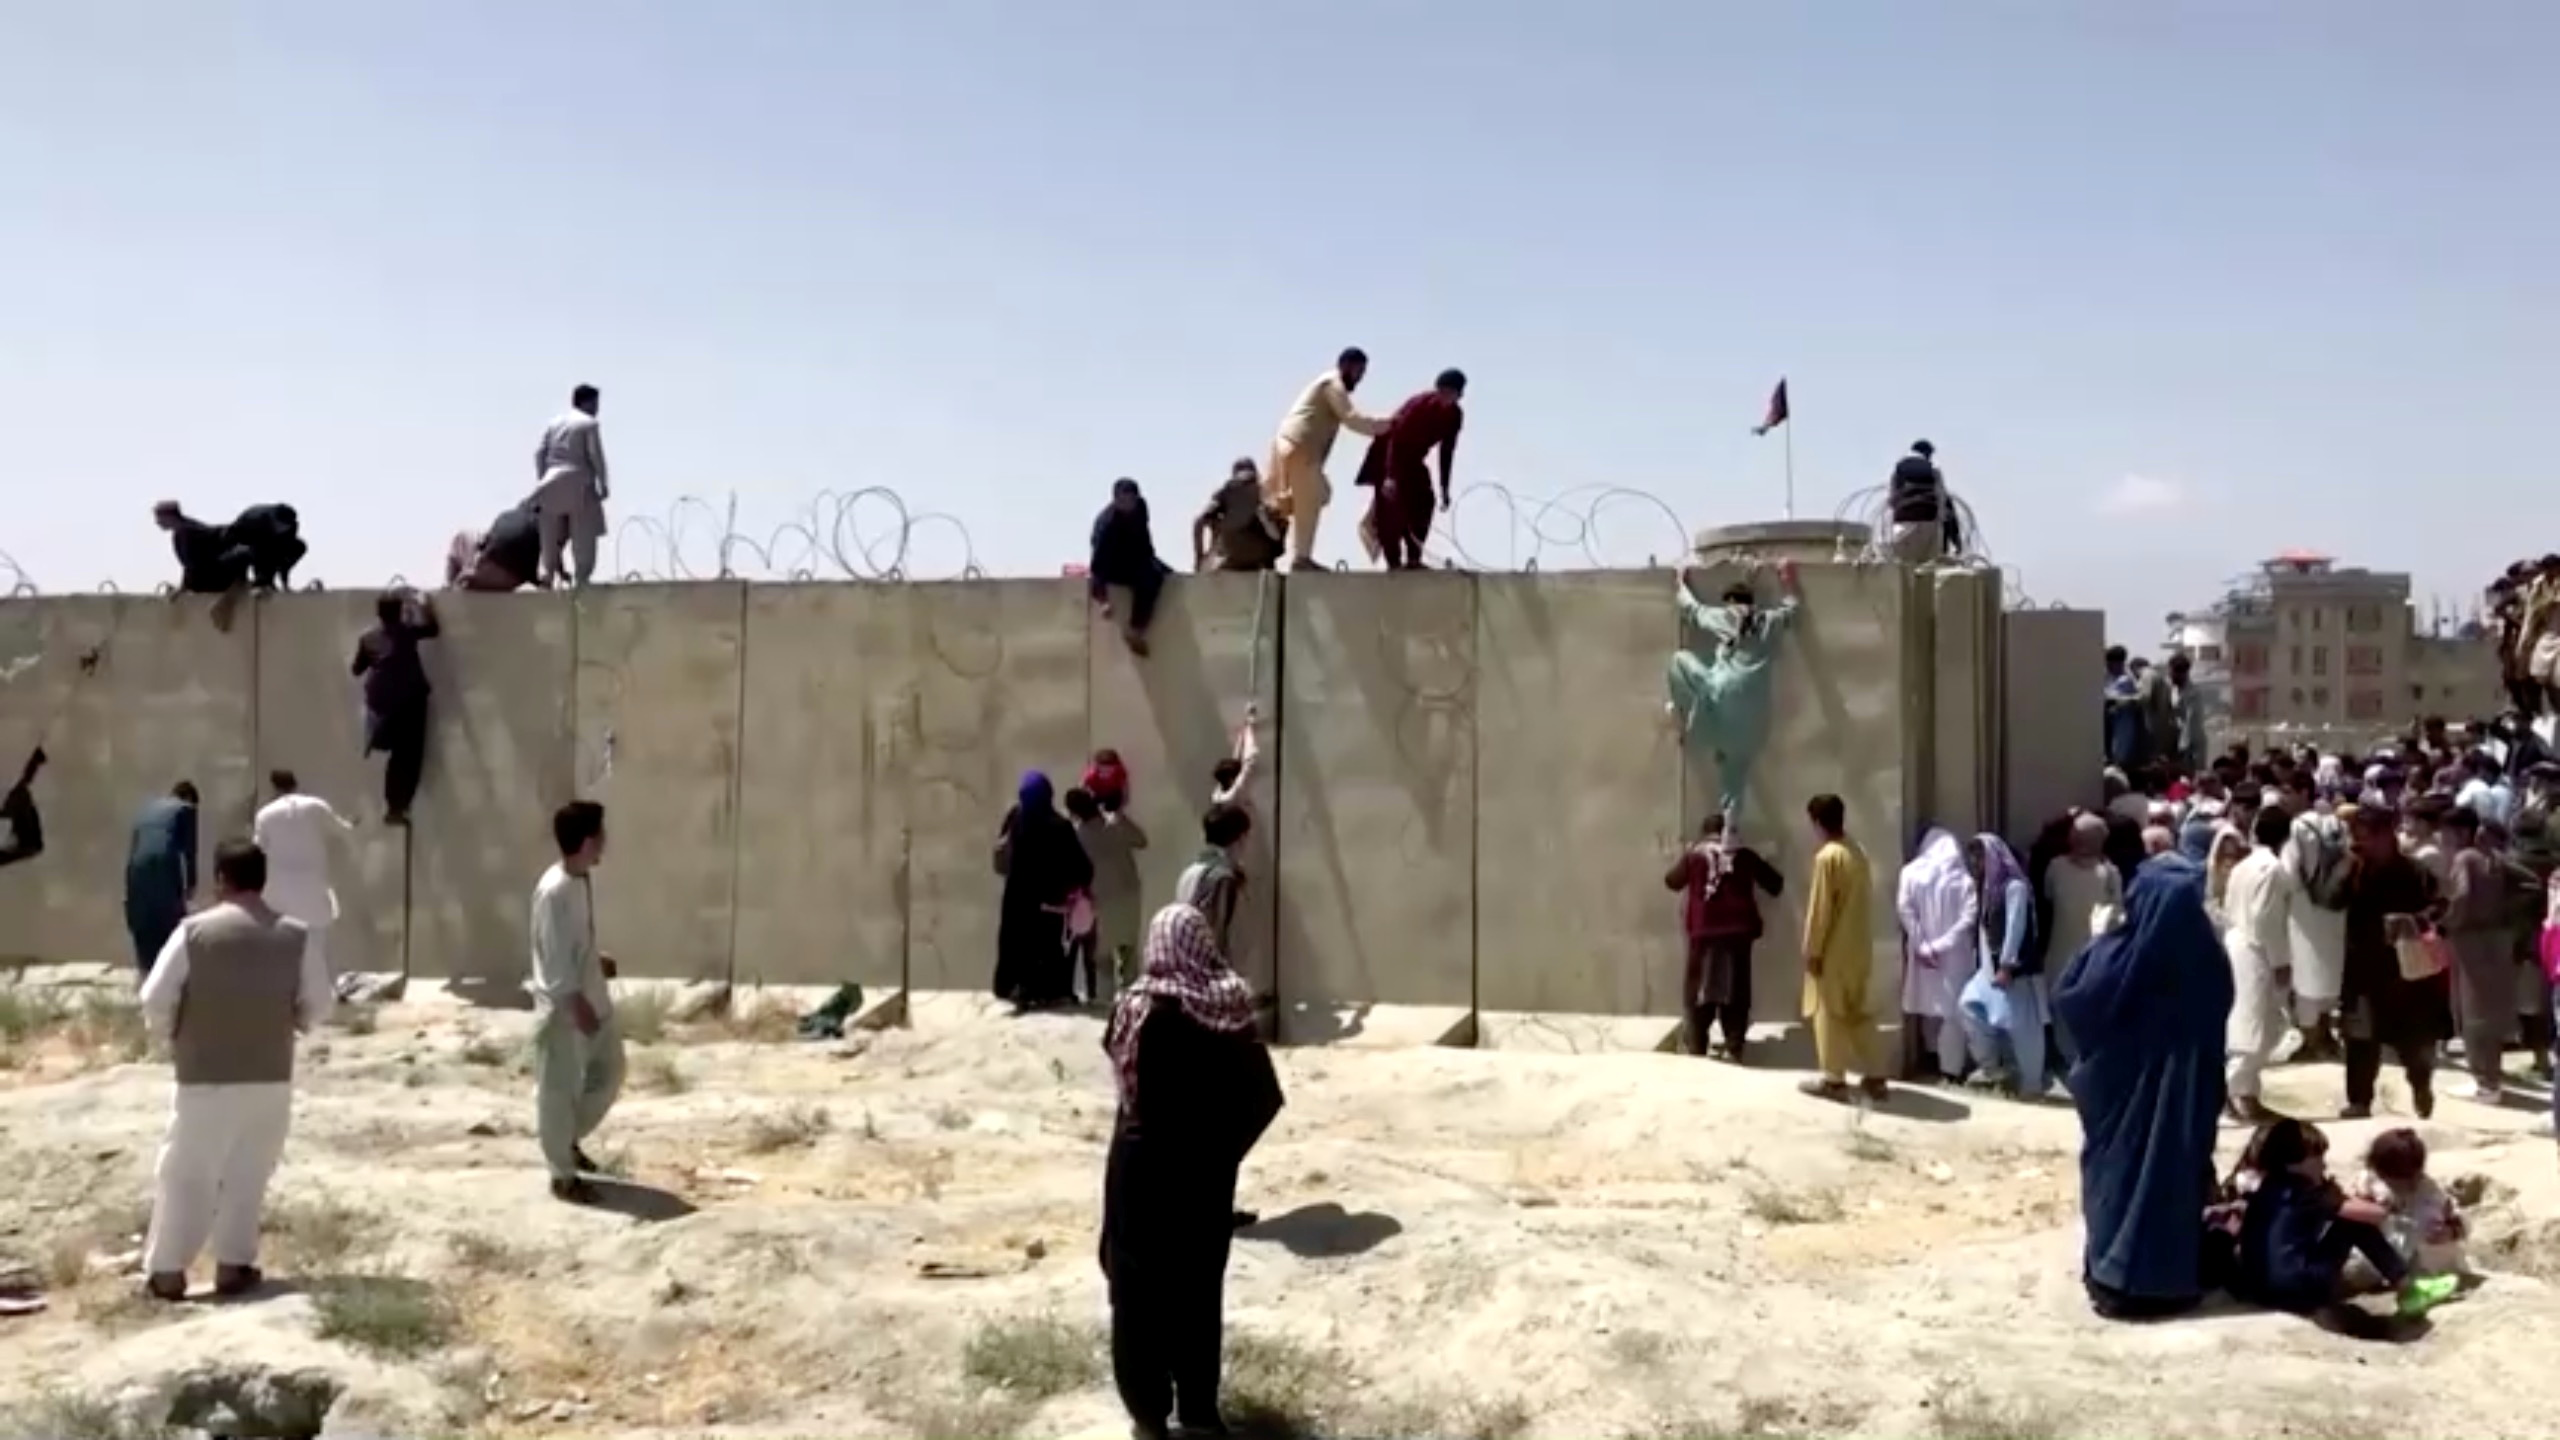 People climb a barbed wire wall to enter the airport in Kabul, Afghanistan August 16, 2021, in this still image taken from a video. REUTERS TV/via REUTERS